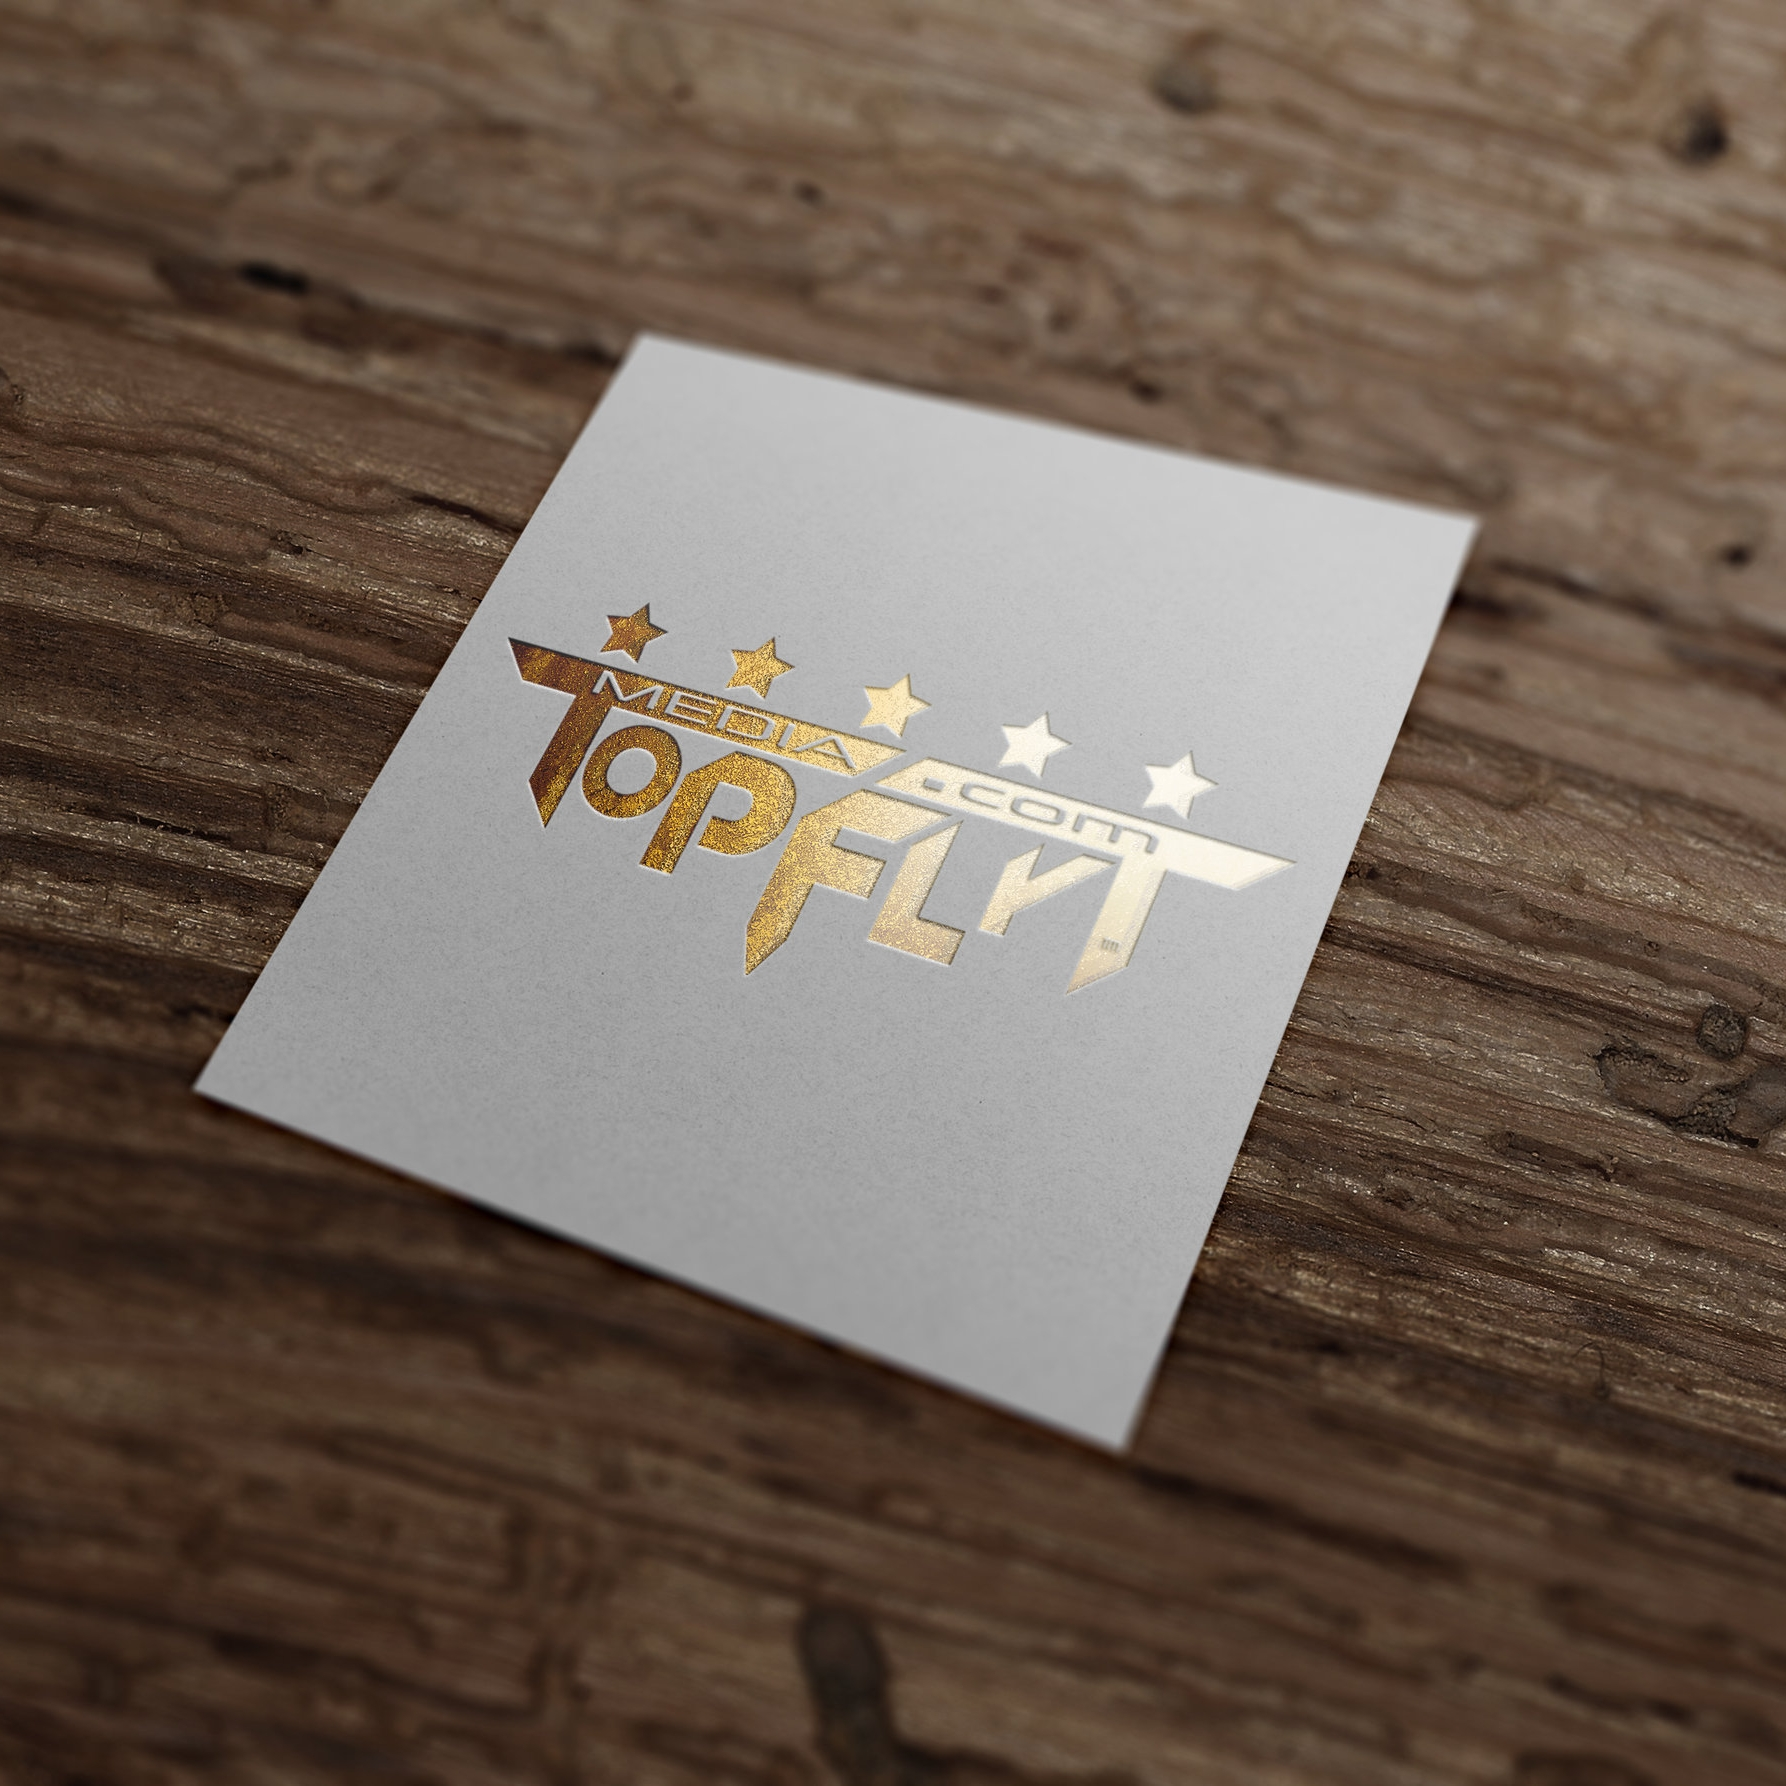 Top-Flyt-Media-5-Star-Gold-Foil.jpg